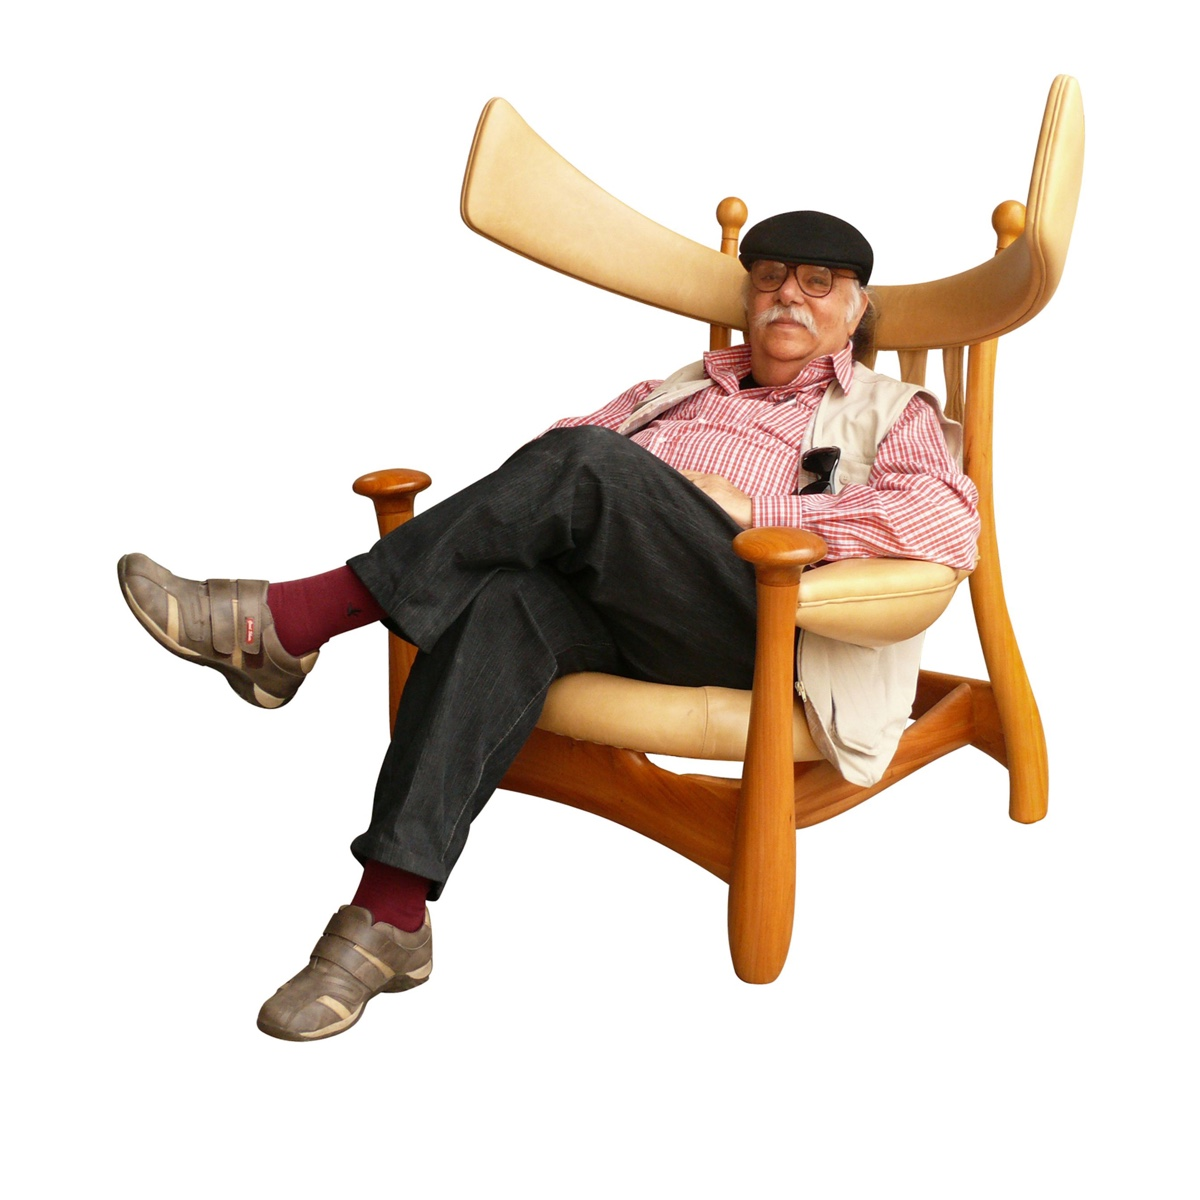 Sergio Rodrigues seated on his 1962 Chifruda armchair.